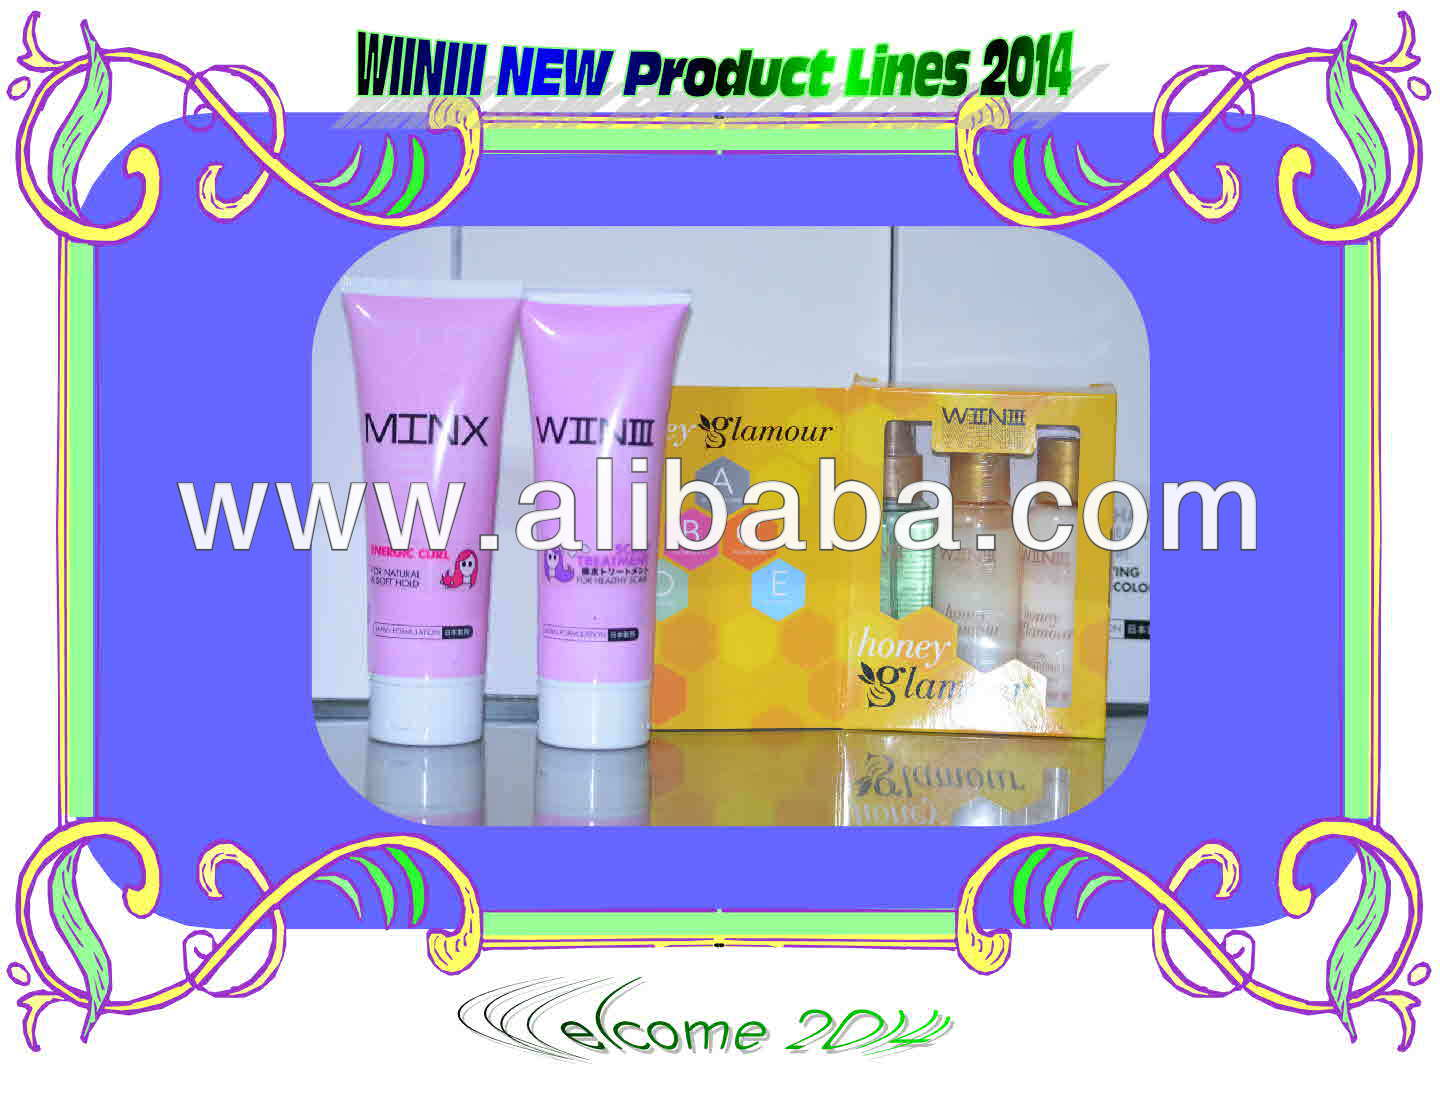 Wiinii Salon Product Lines from Japan looking for Distributor